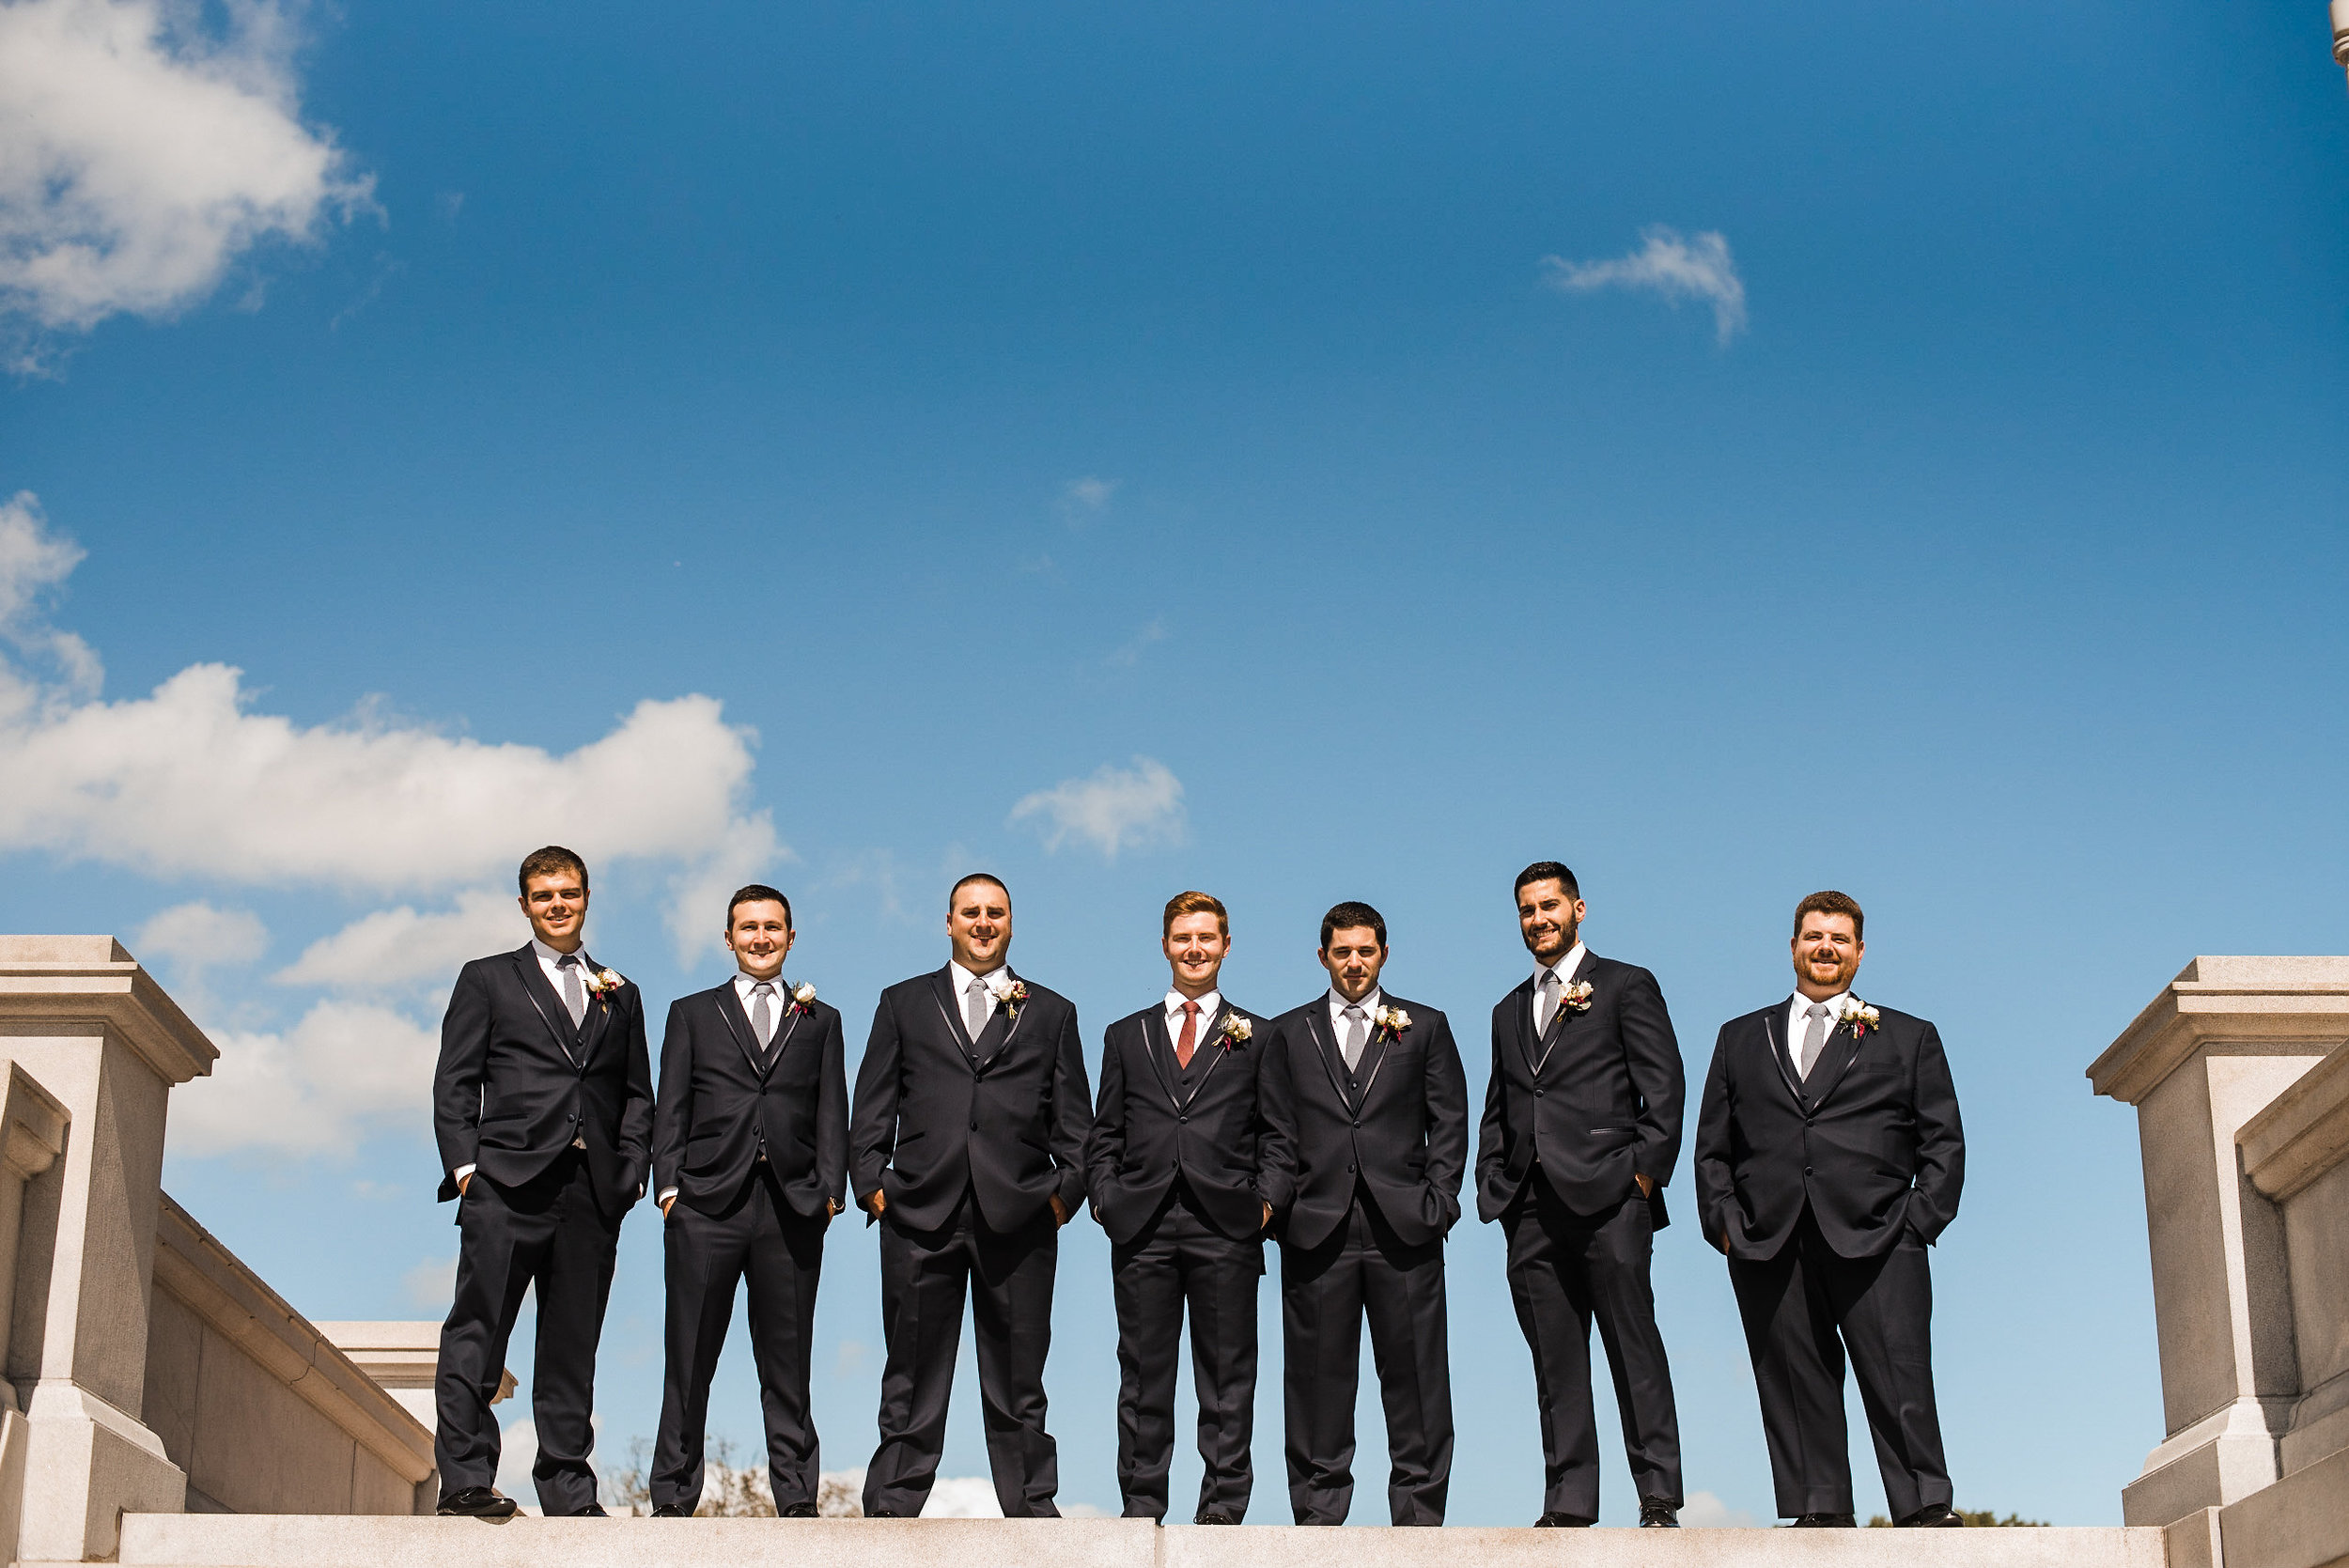 Groom and groomsmen lined up on step